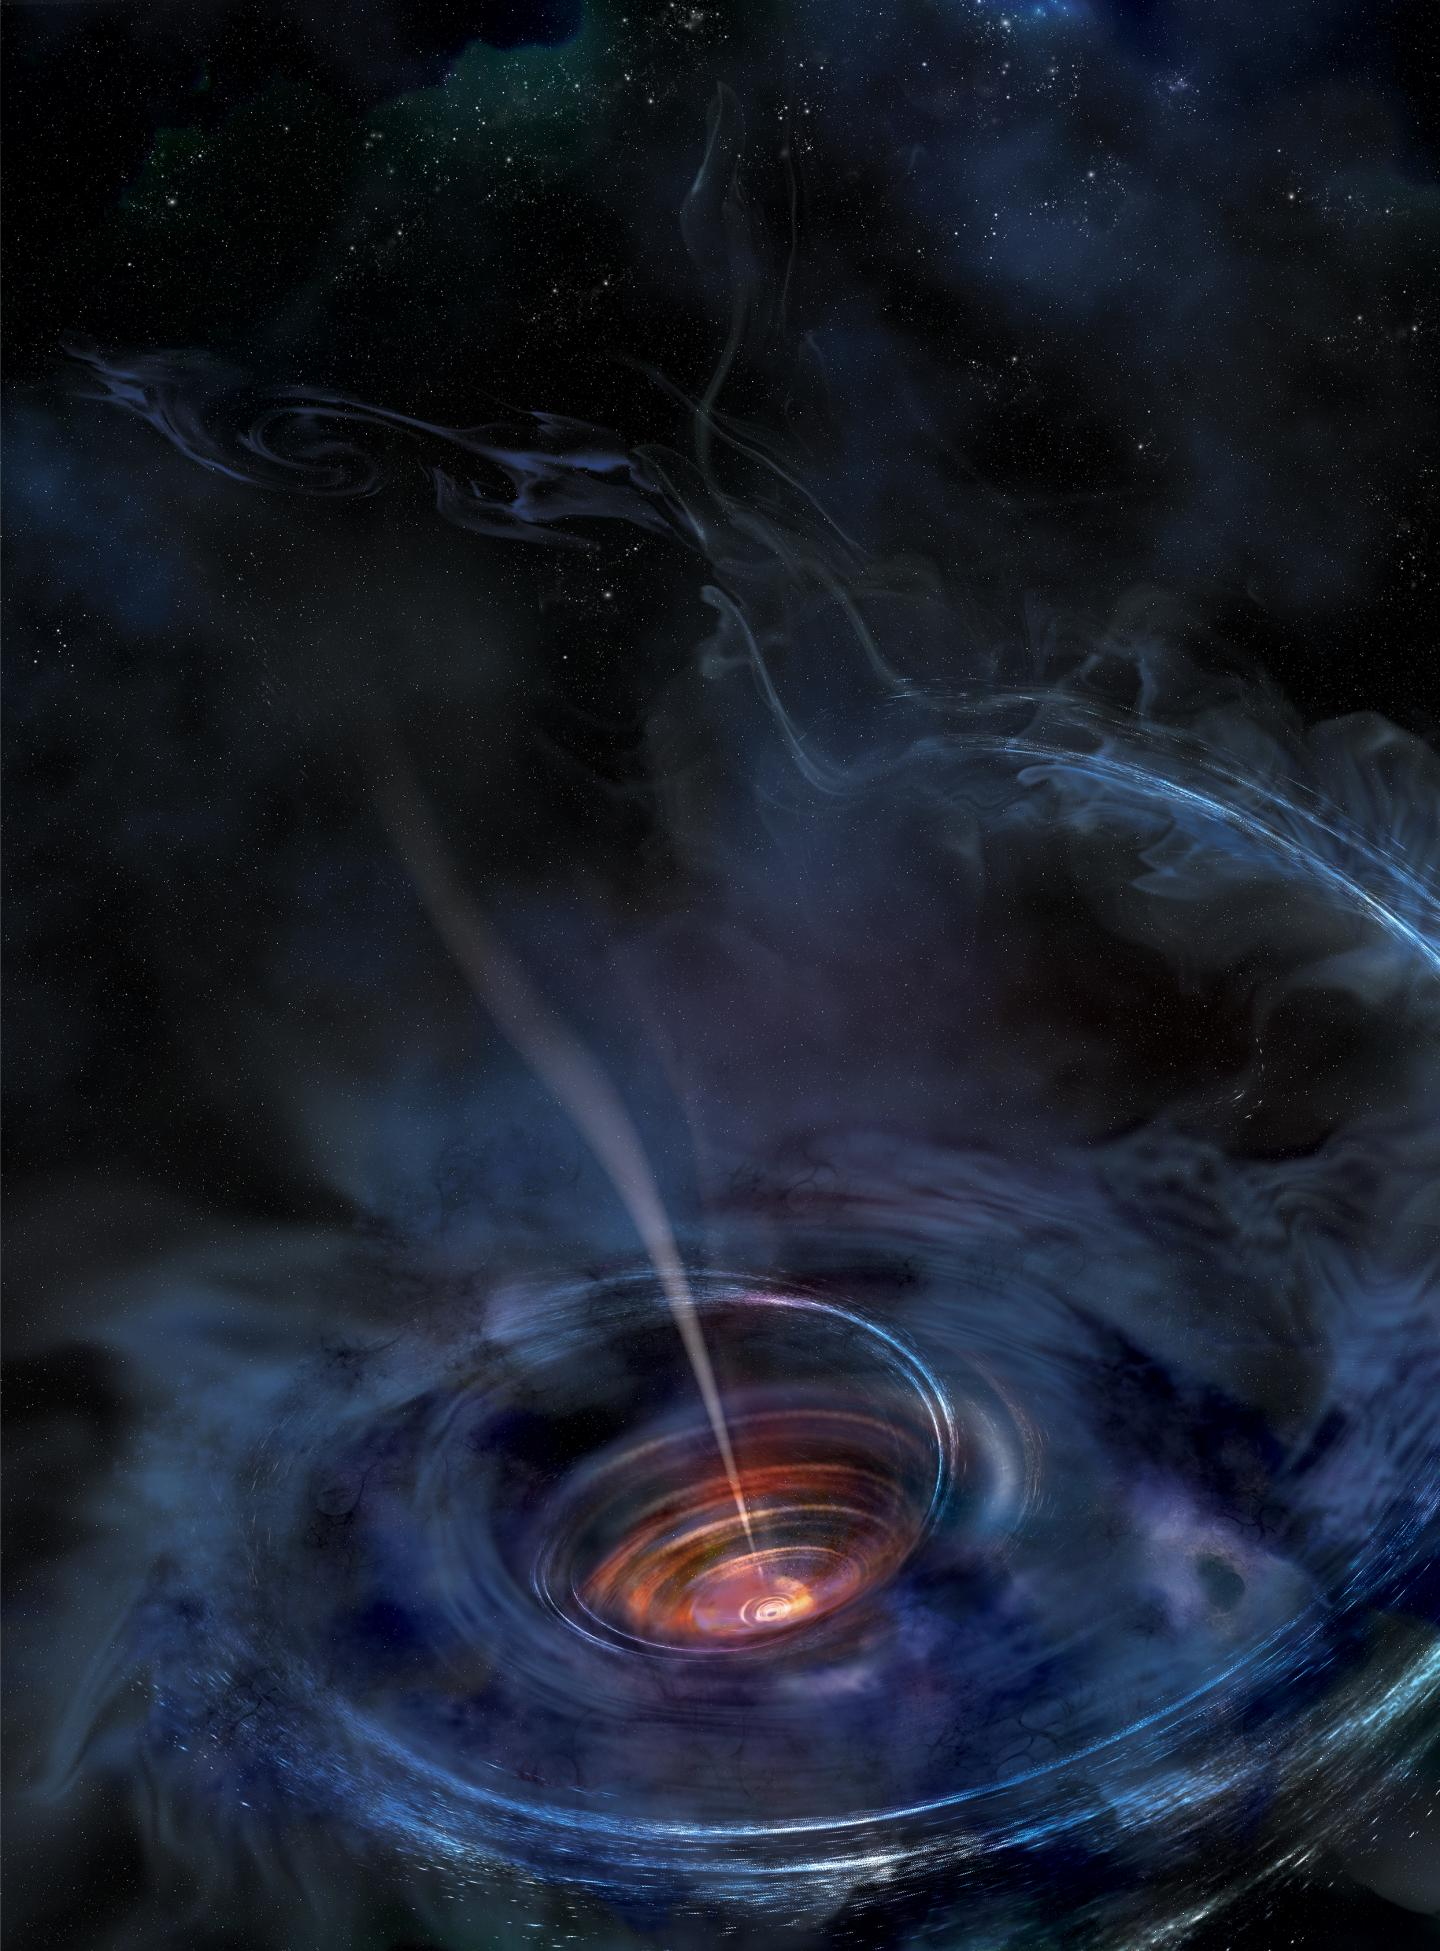 Sleeping Black Hole Awakens to Devour Doomed Star